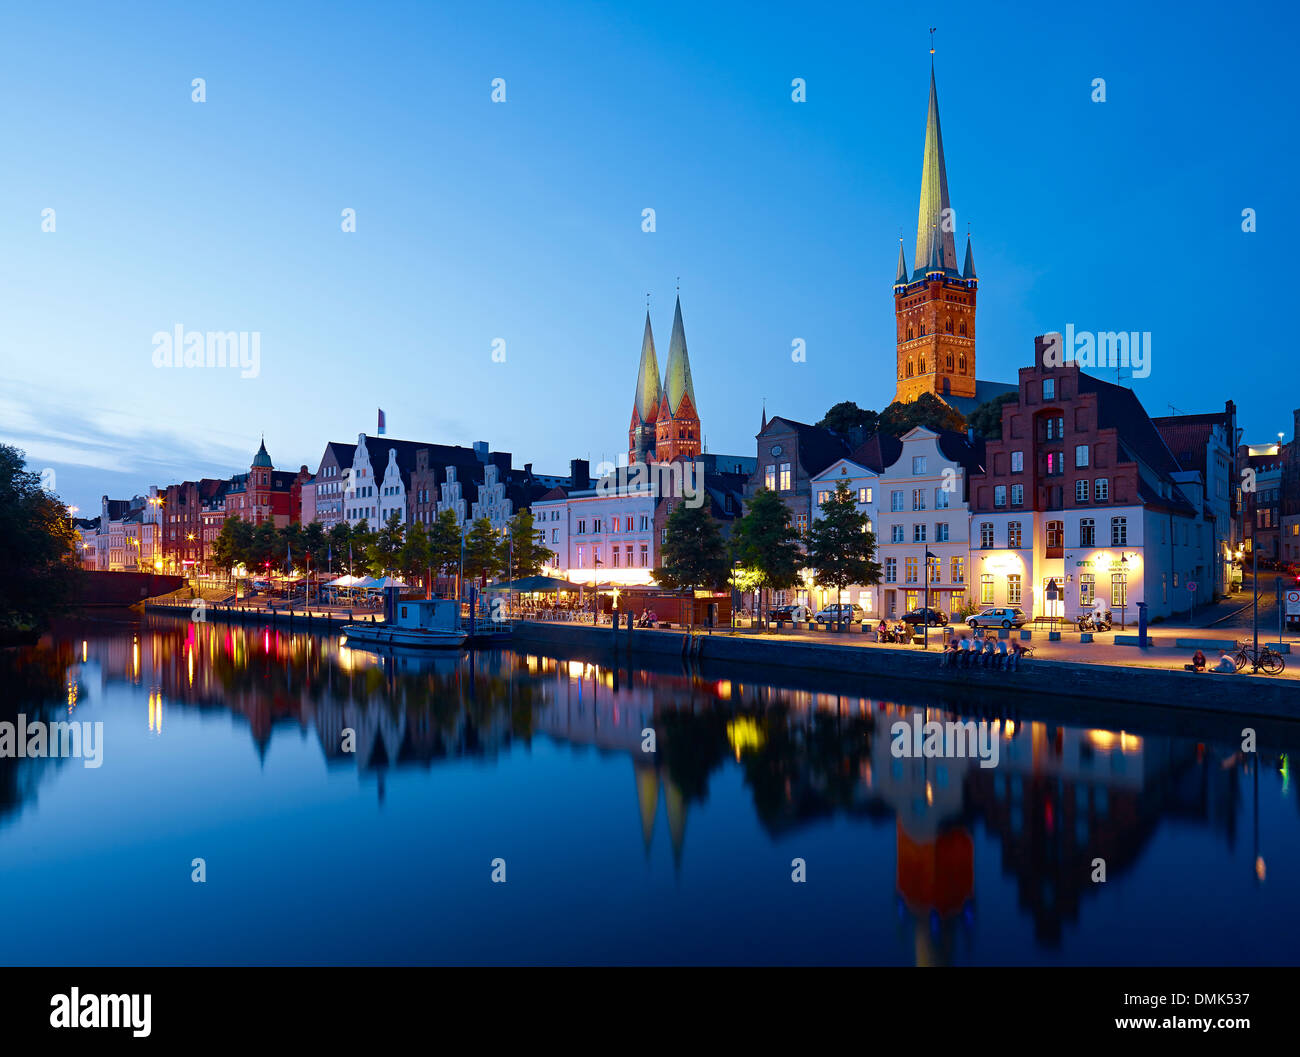 View to Obertrave with St. Marys of Lübeck and St. Peters Church, Lübeck, Schleswig-Holstein, Germany - Stock Image